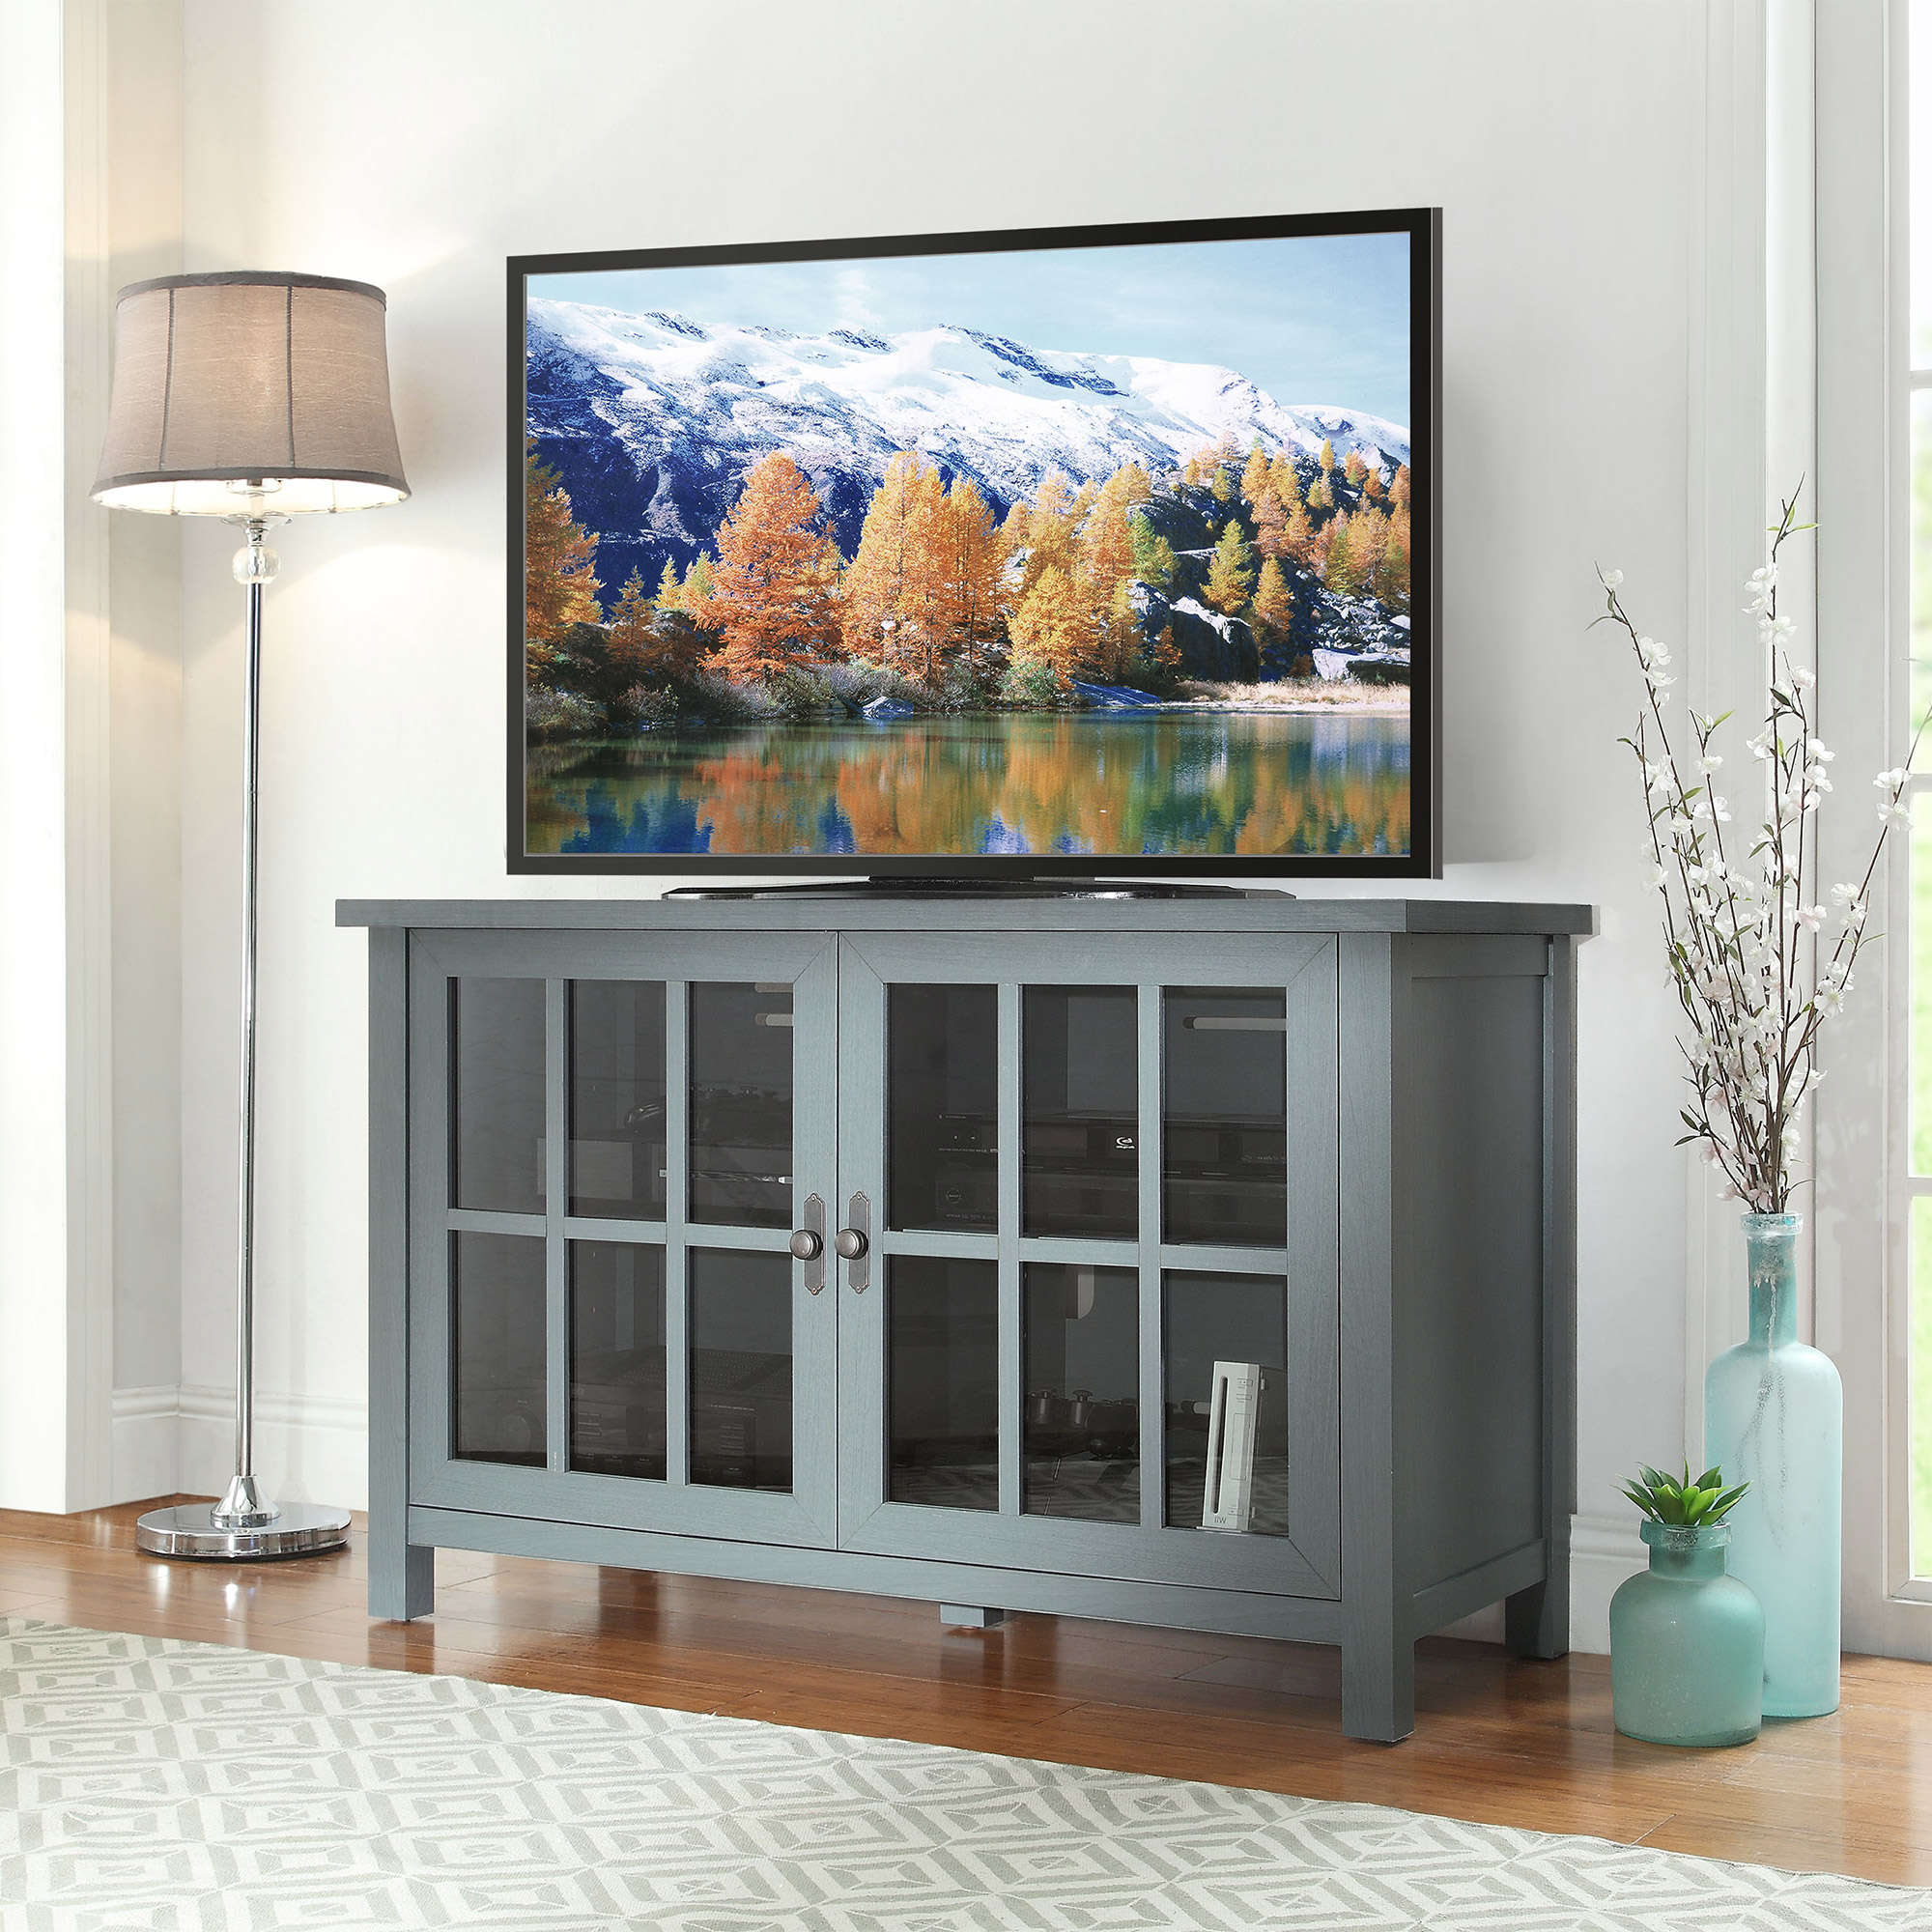 Recent Better Homes And Gardens Oxford Square Tv Console For Tvs Up To 55 Pertaining To Oxford 60 Inch Tv Stands (Gallery 15 of 20)